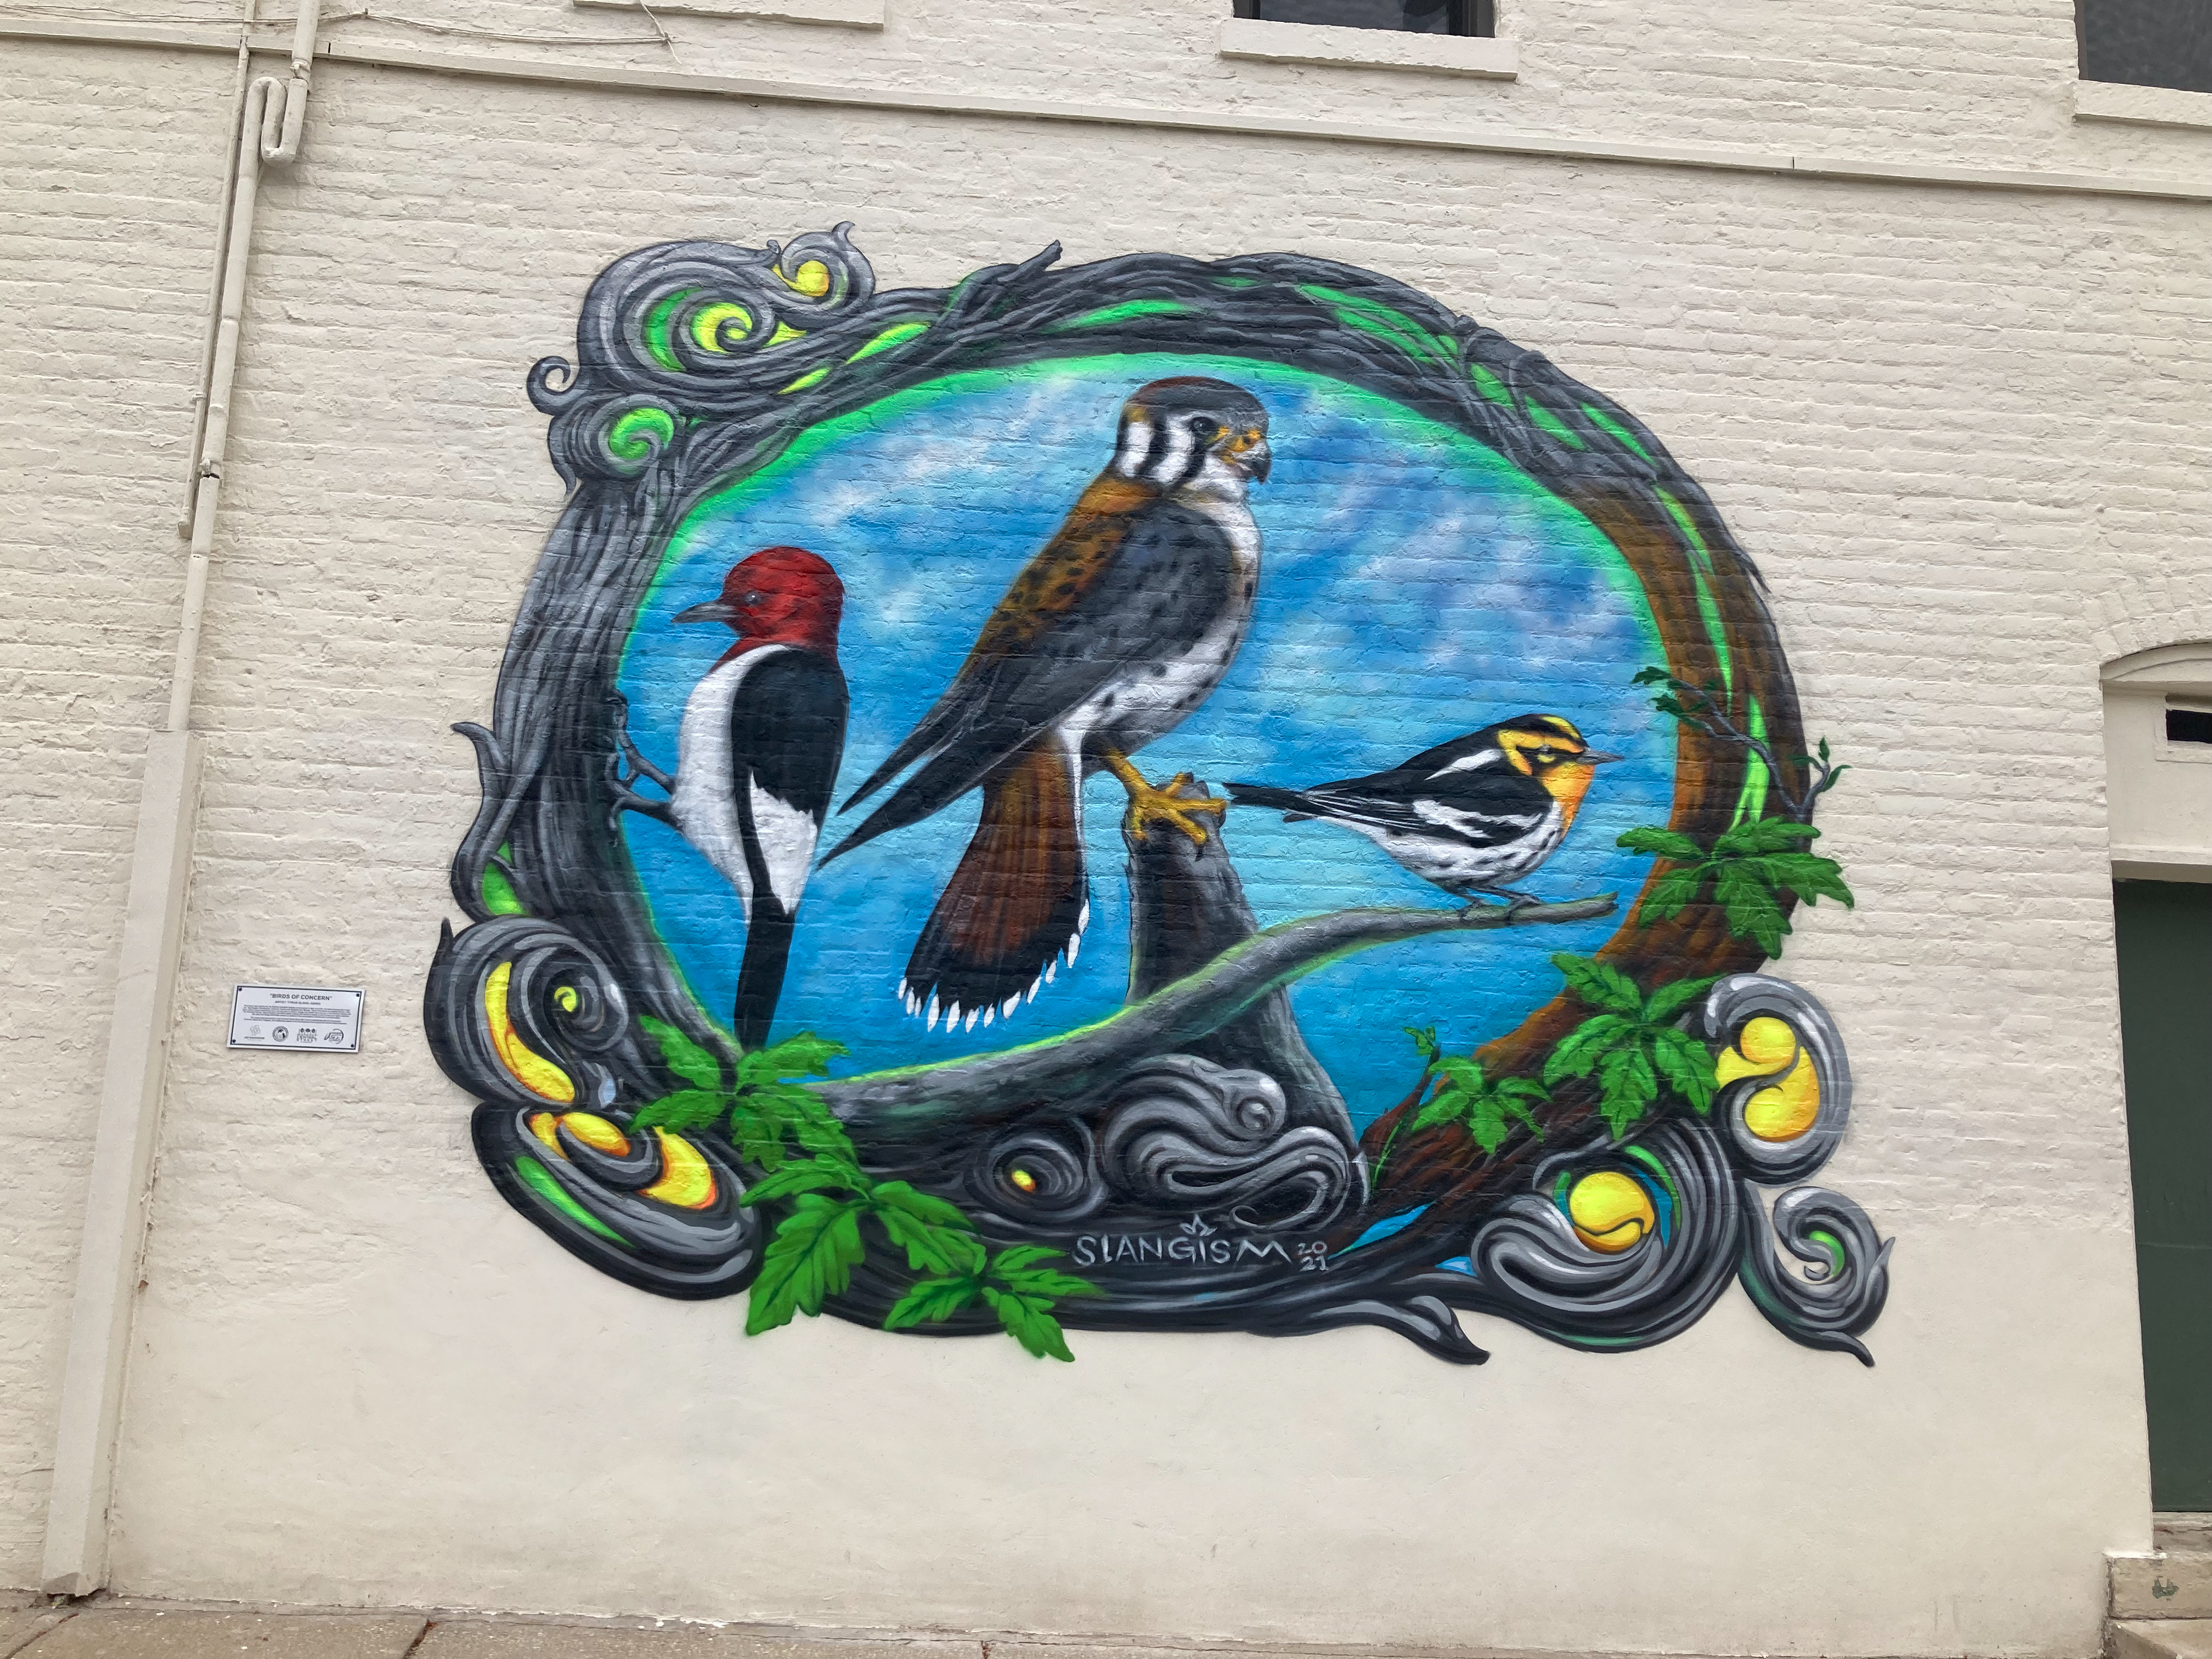 """Tyrue """"Slang"""" Jones' Evanston mural """"Birds of Concern"""" at 1901 Central St. depicts three birds common in Ilinois that are considered vulnerable: the red-headed woodpecker, the American kestrel and the Blackburnian warbler."""